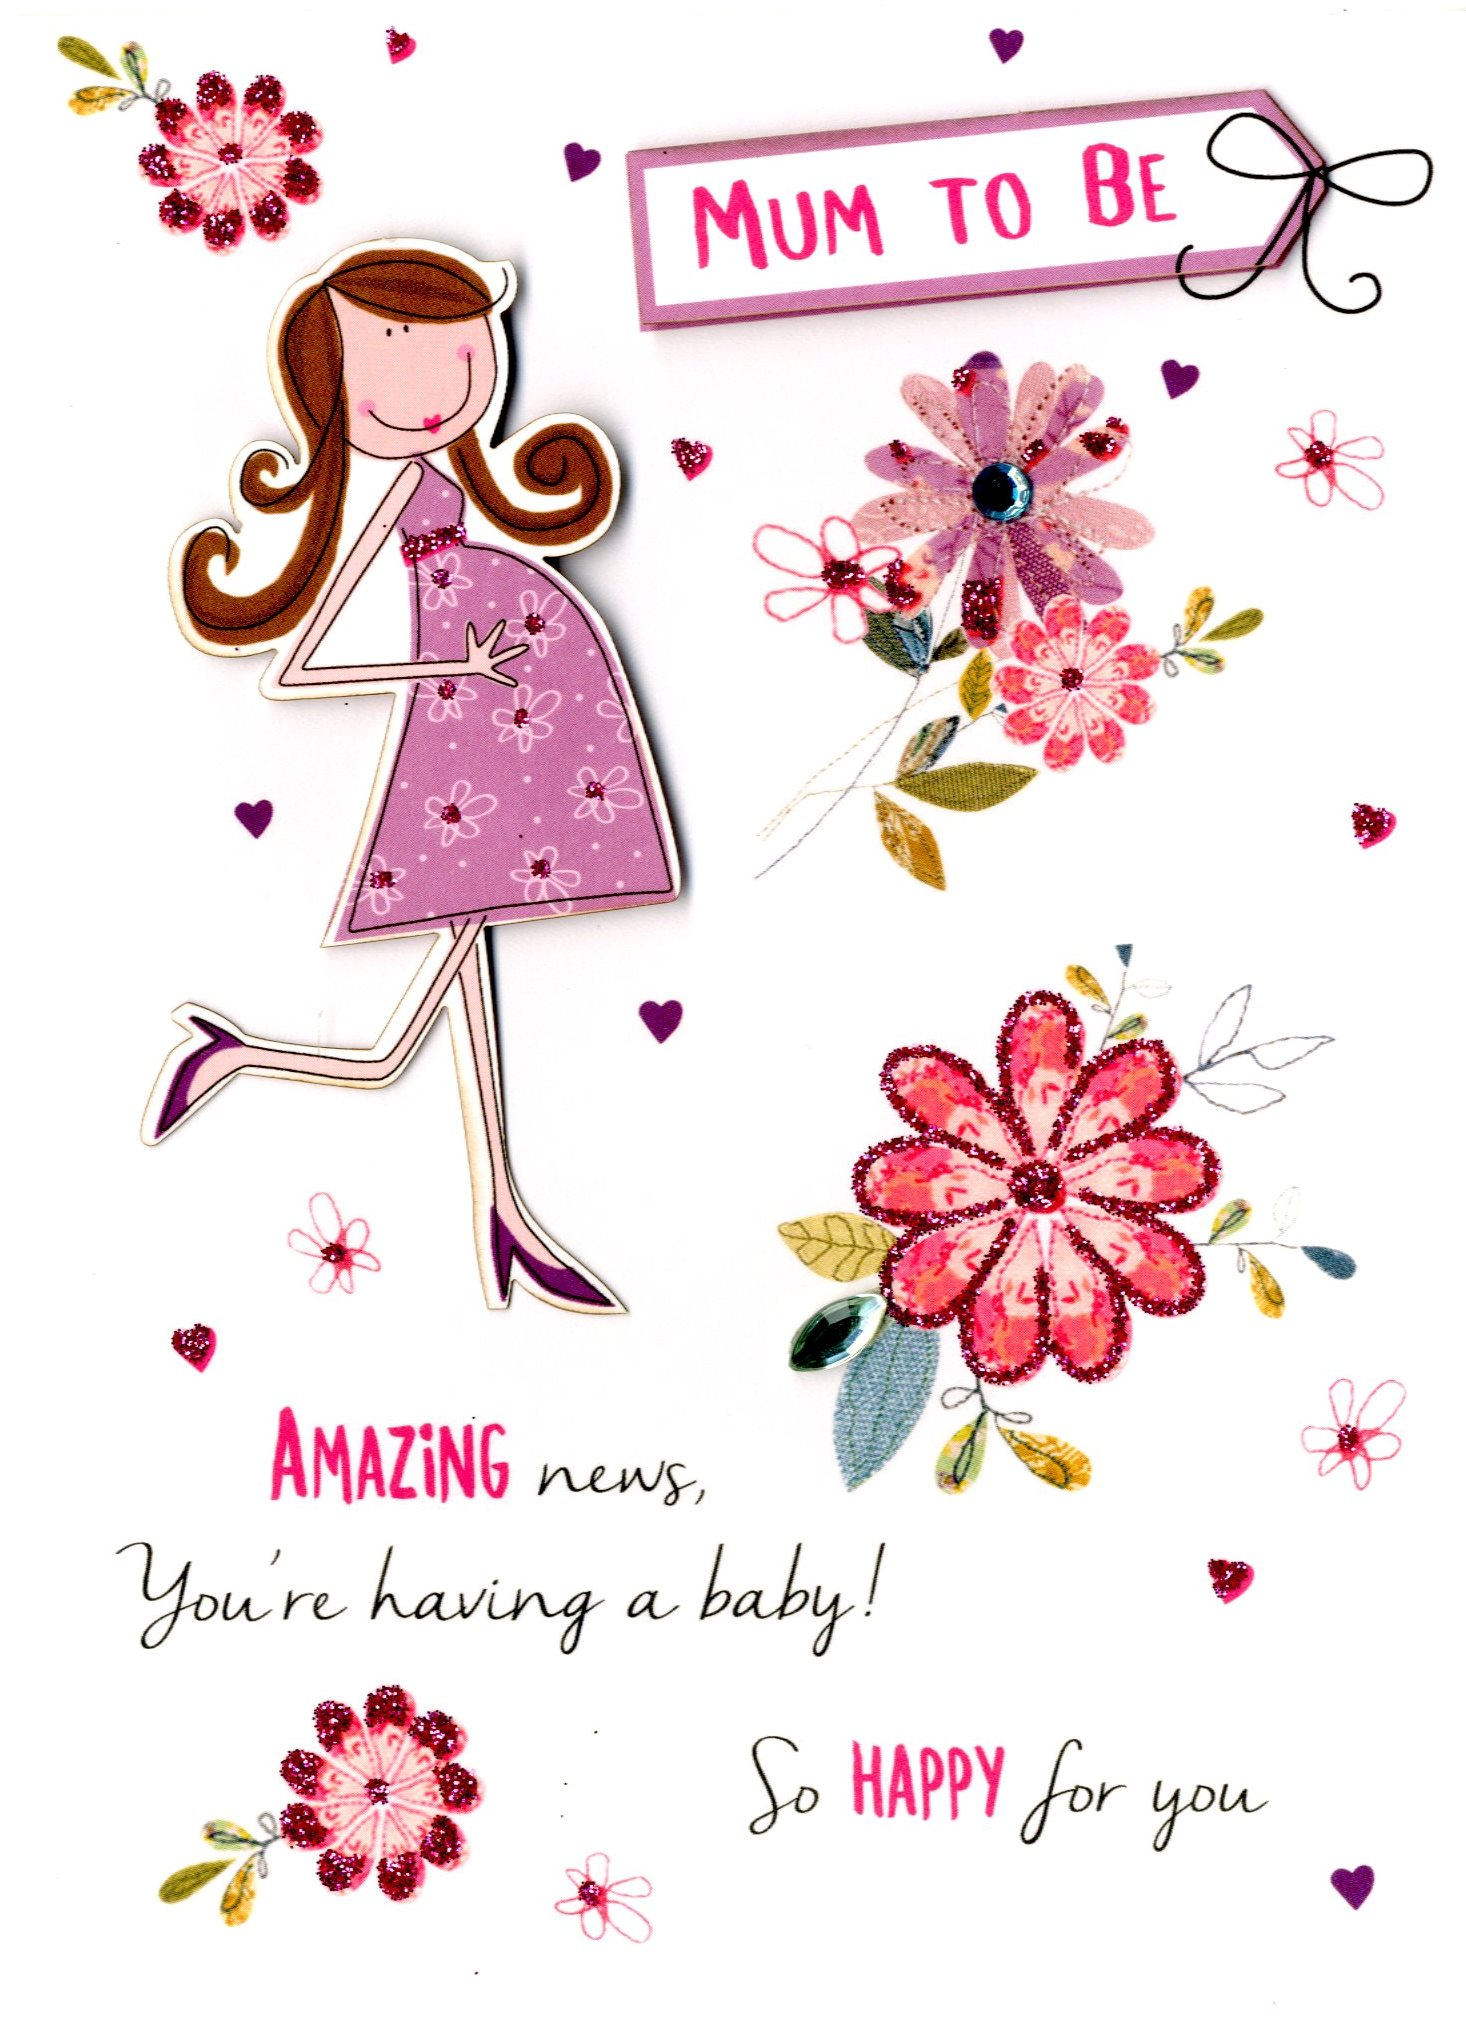 Mum To Be Expecting A Baby Greeting Card Cards Love Kates